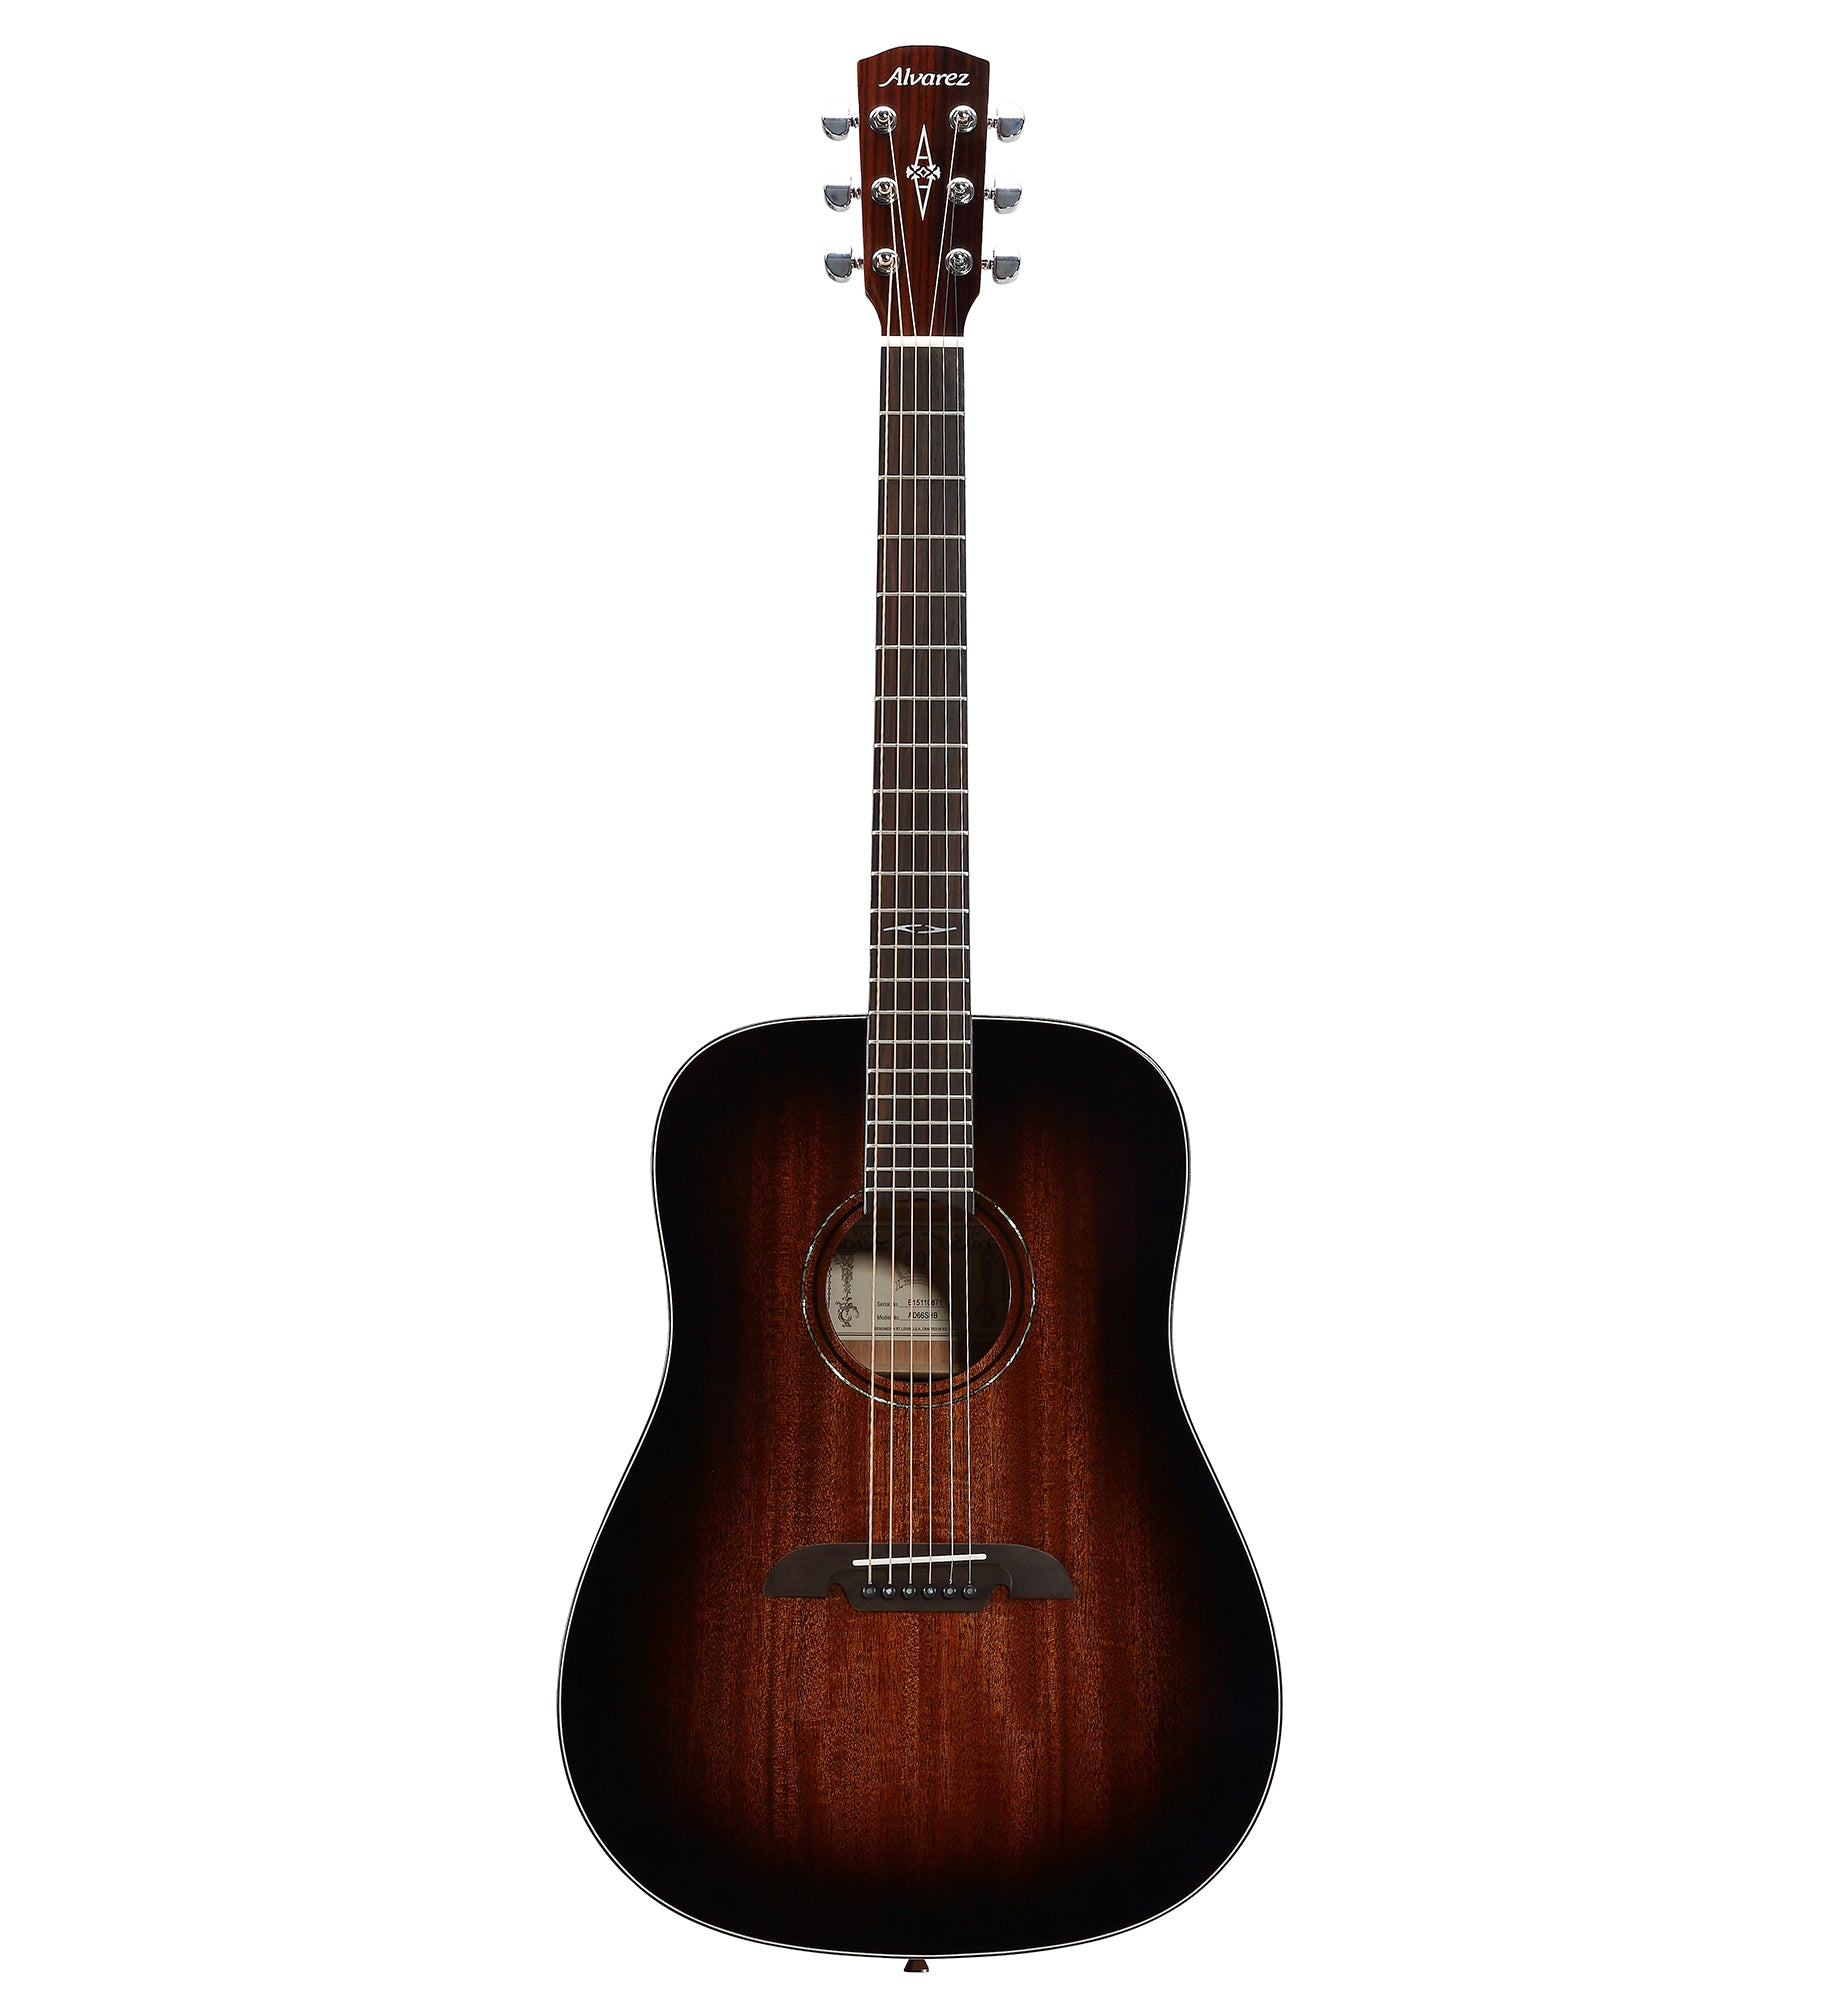 Alvarez Artist Series AD66 SHB Dreadnought Acoustic Guitar